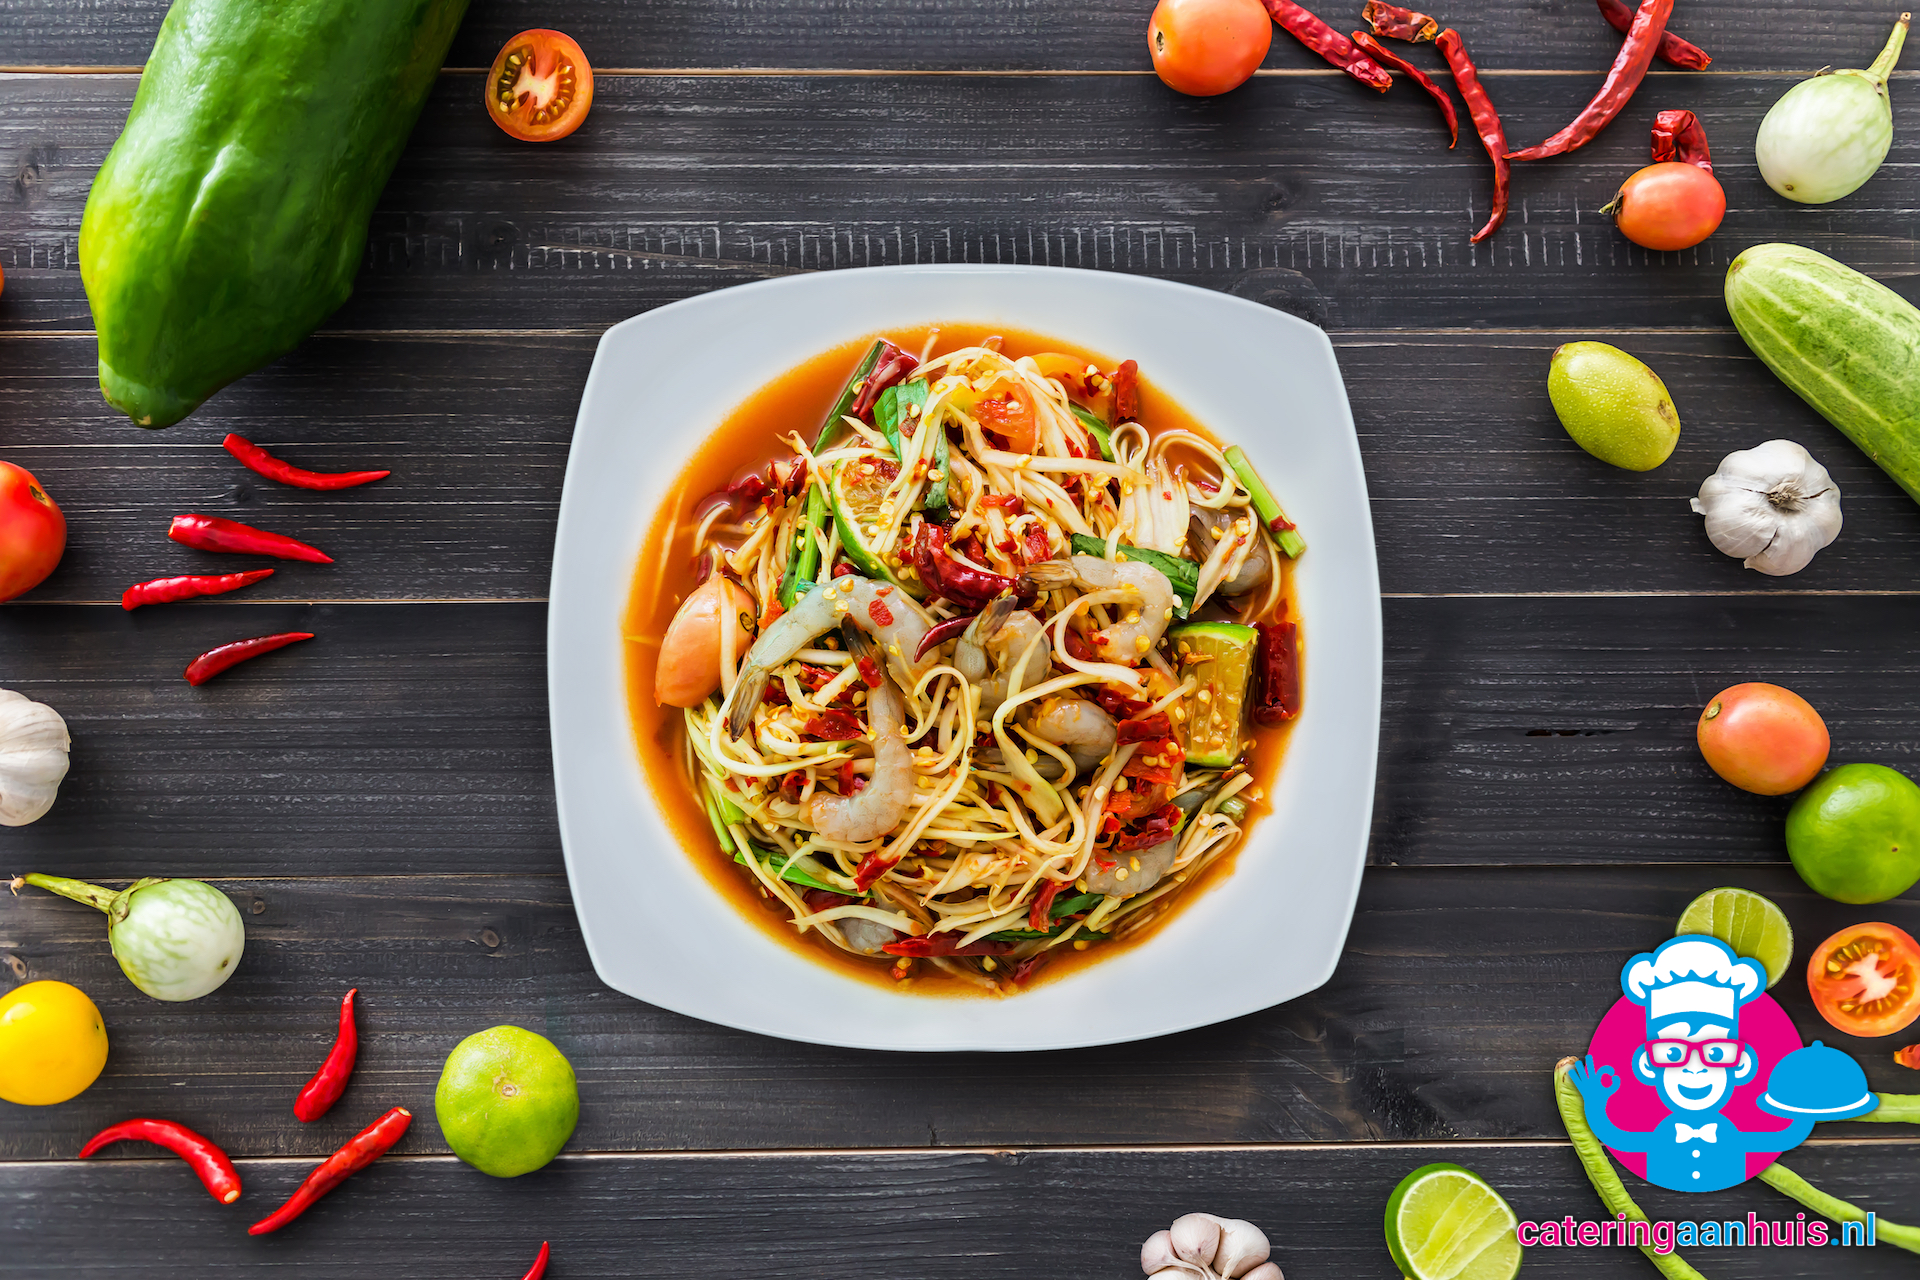 In Thai cuisine, papaya is used to make Thai salads such as som tam.